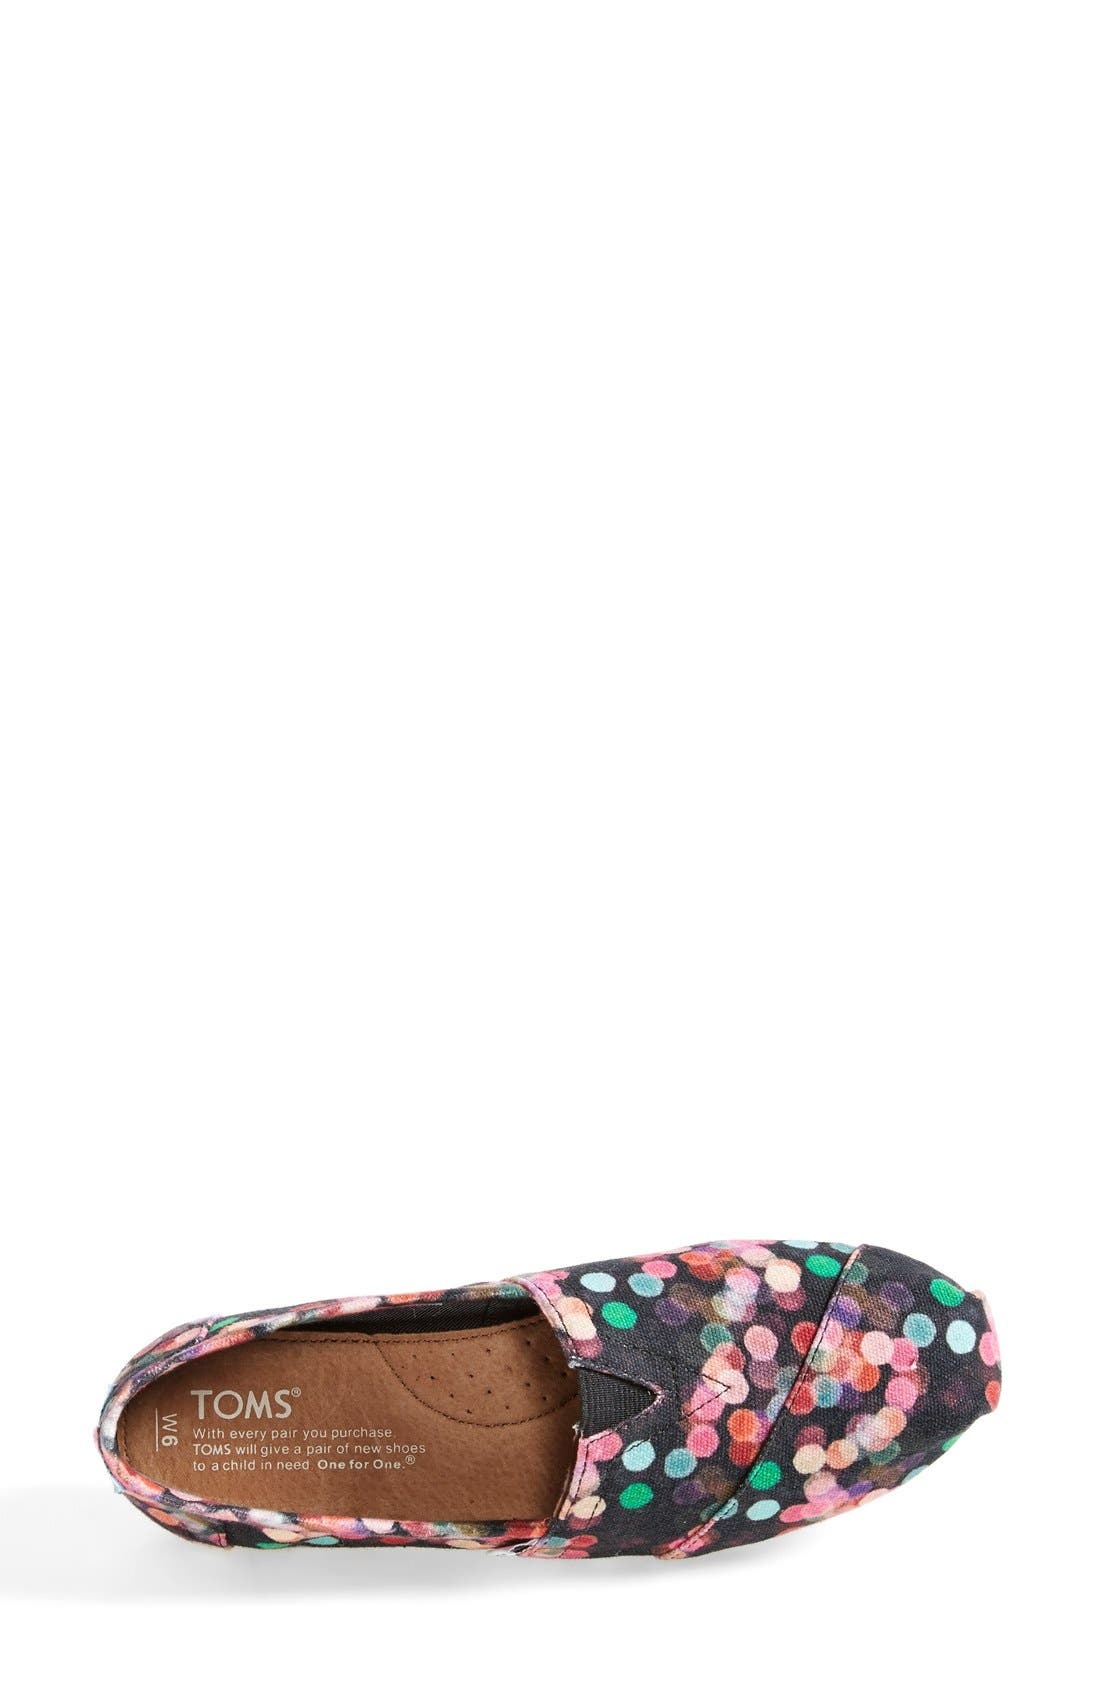 Alternate Image 3  - TOMS 'Classic - Night Lights' Slip-On (Nordstrom Exclusive) (Women)